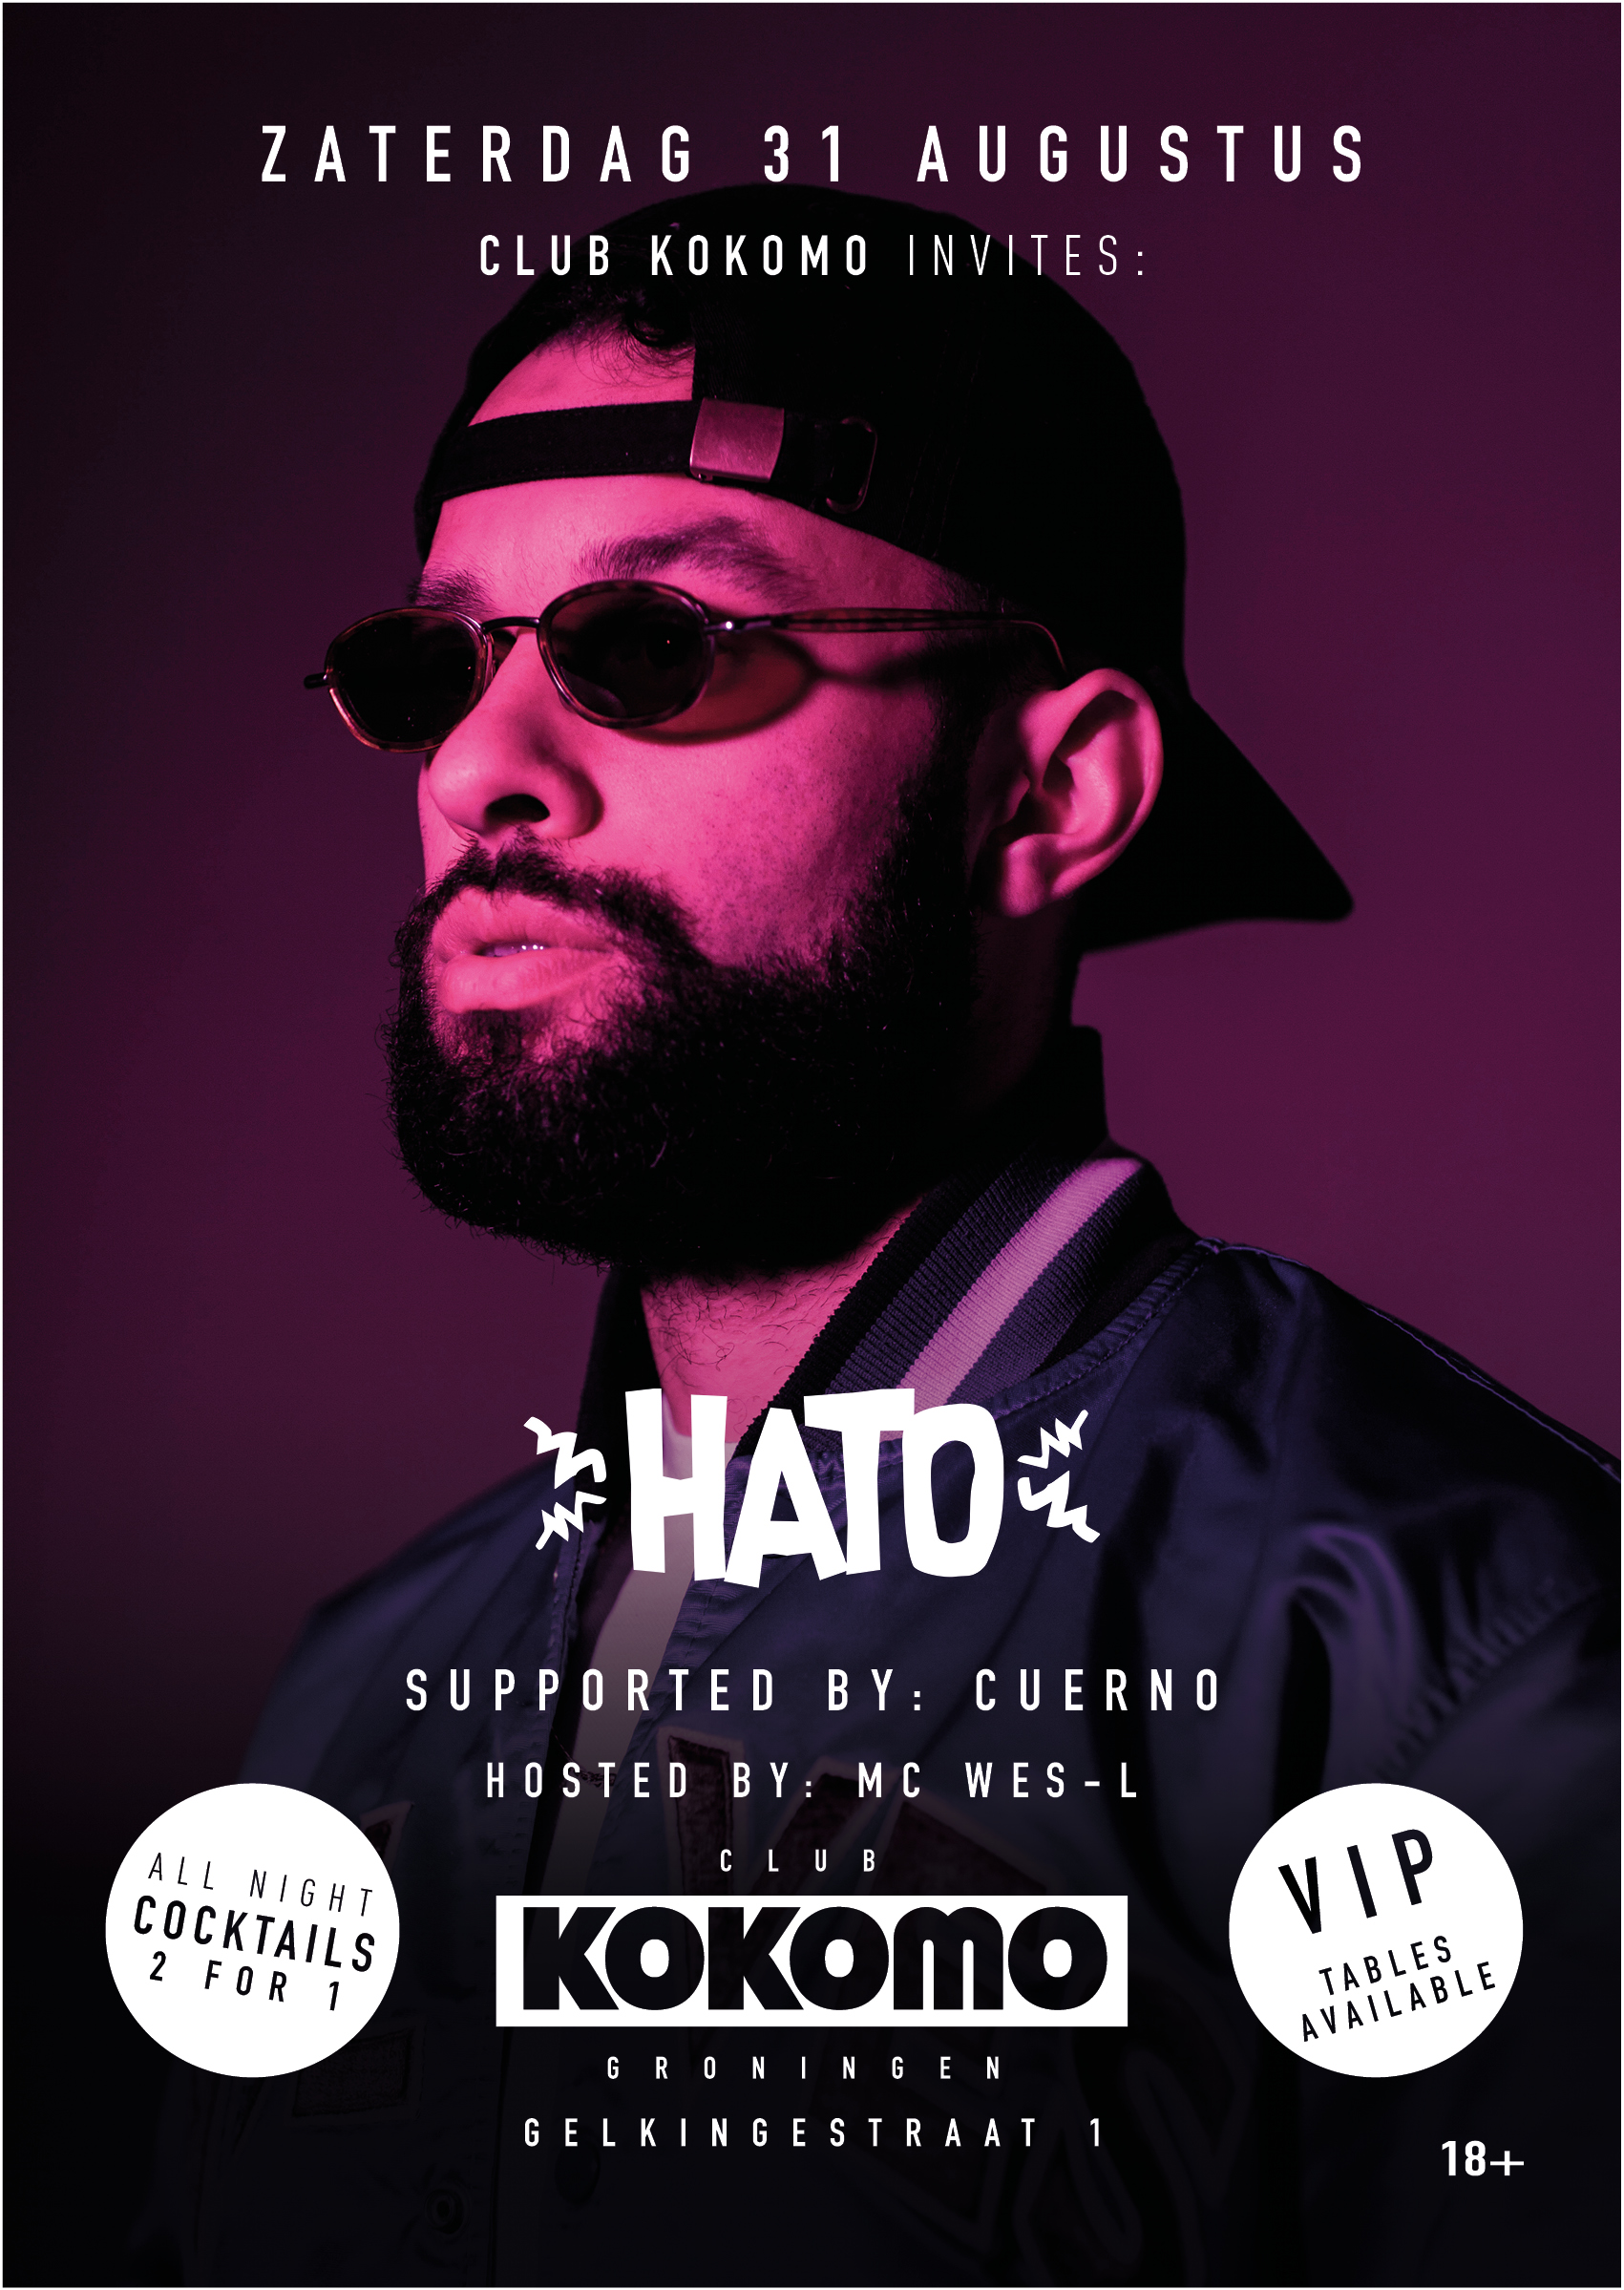 Club Kokomo Invites: HATO